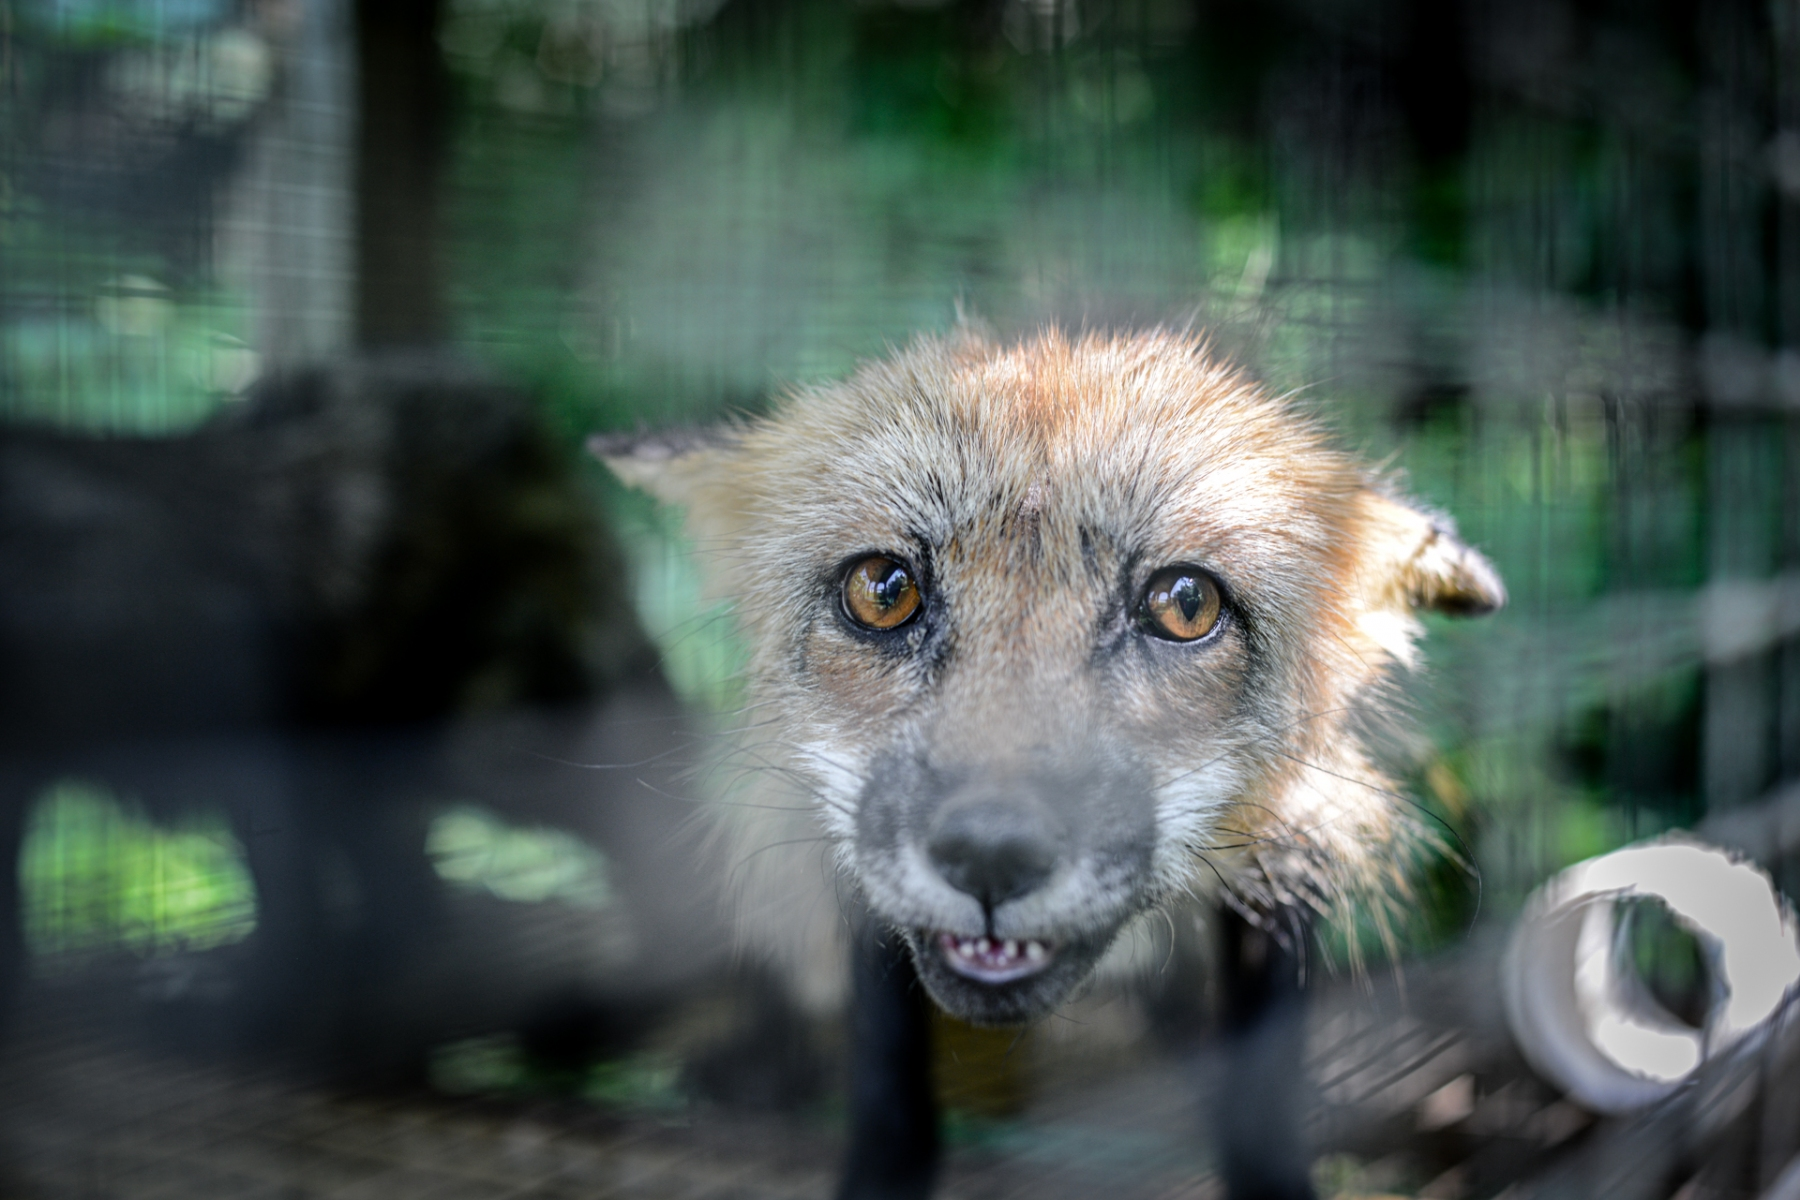 A red fox at a fur farm, which has since been closed down. Canada, 2014.